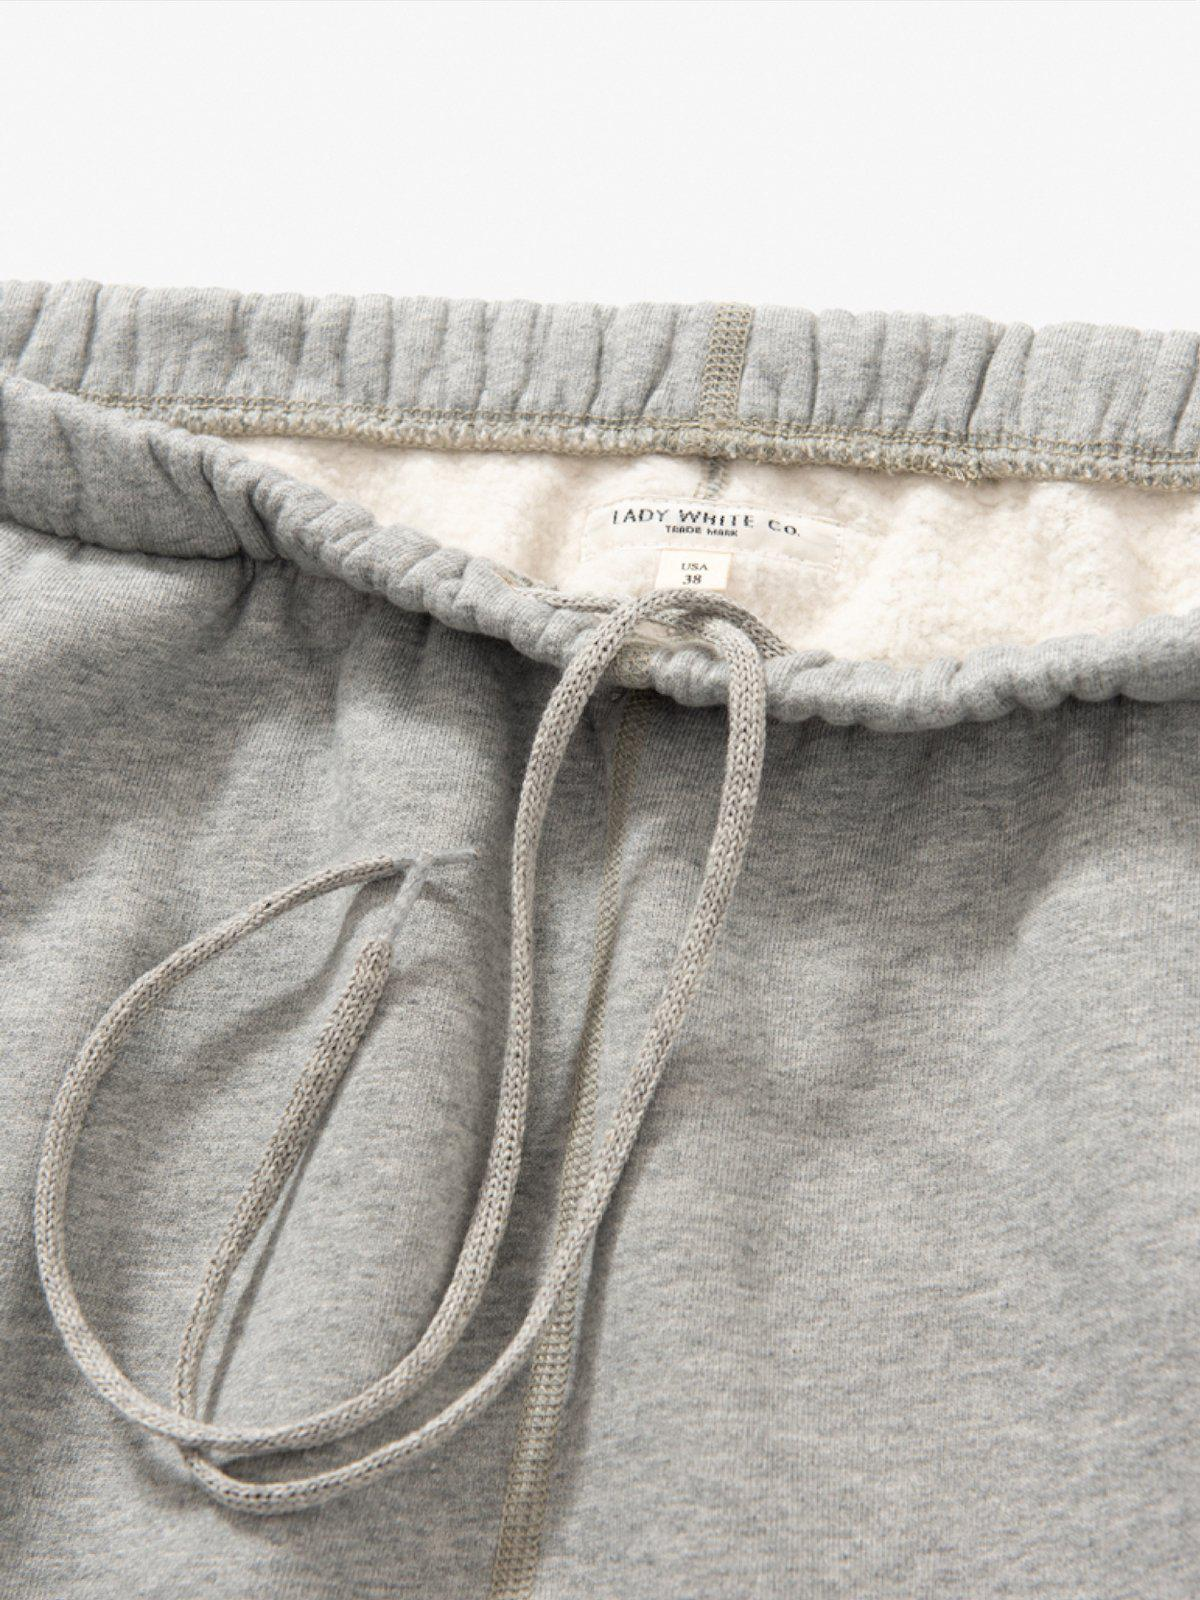 Lady White Co. Sweatpant Heather Grey - MORE by Morello Indonesia